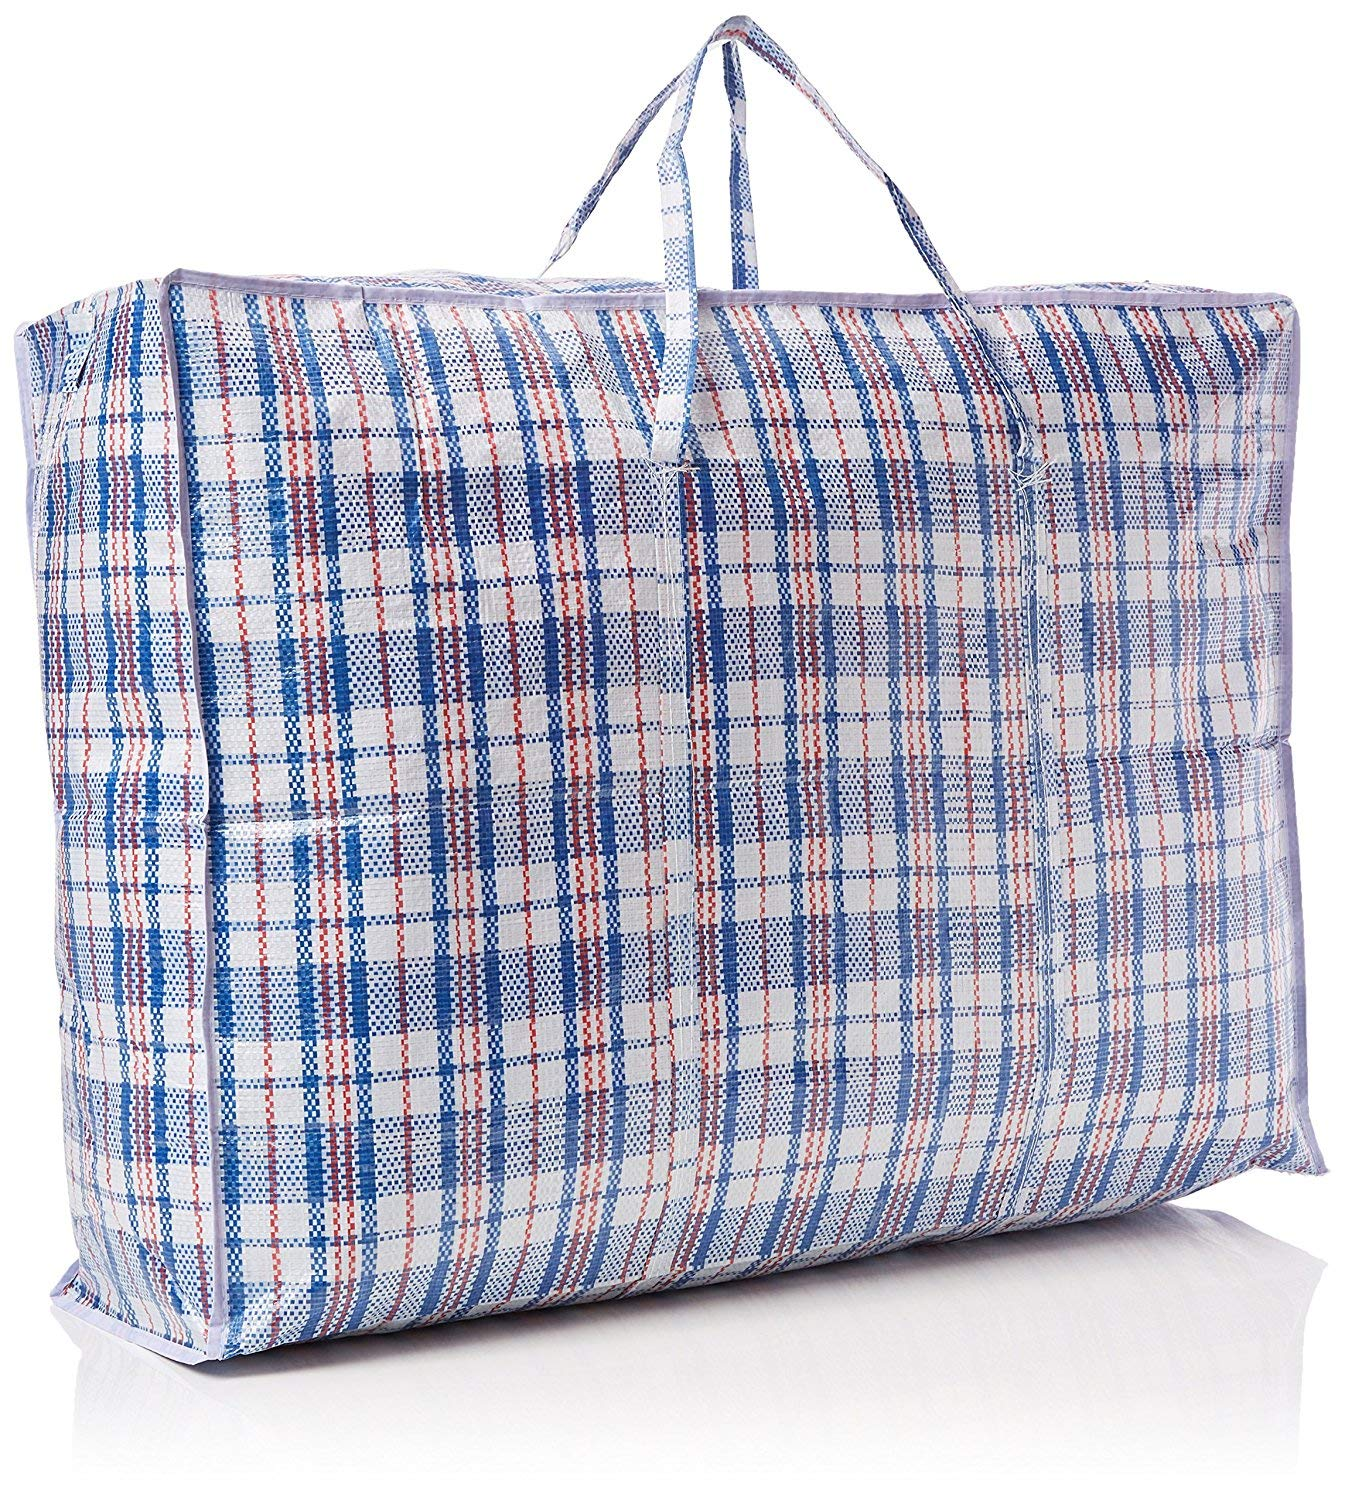 806025cm Mix Grids London Storage and Moving Bag Pack of 5